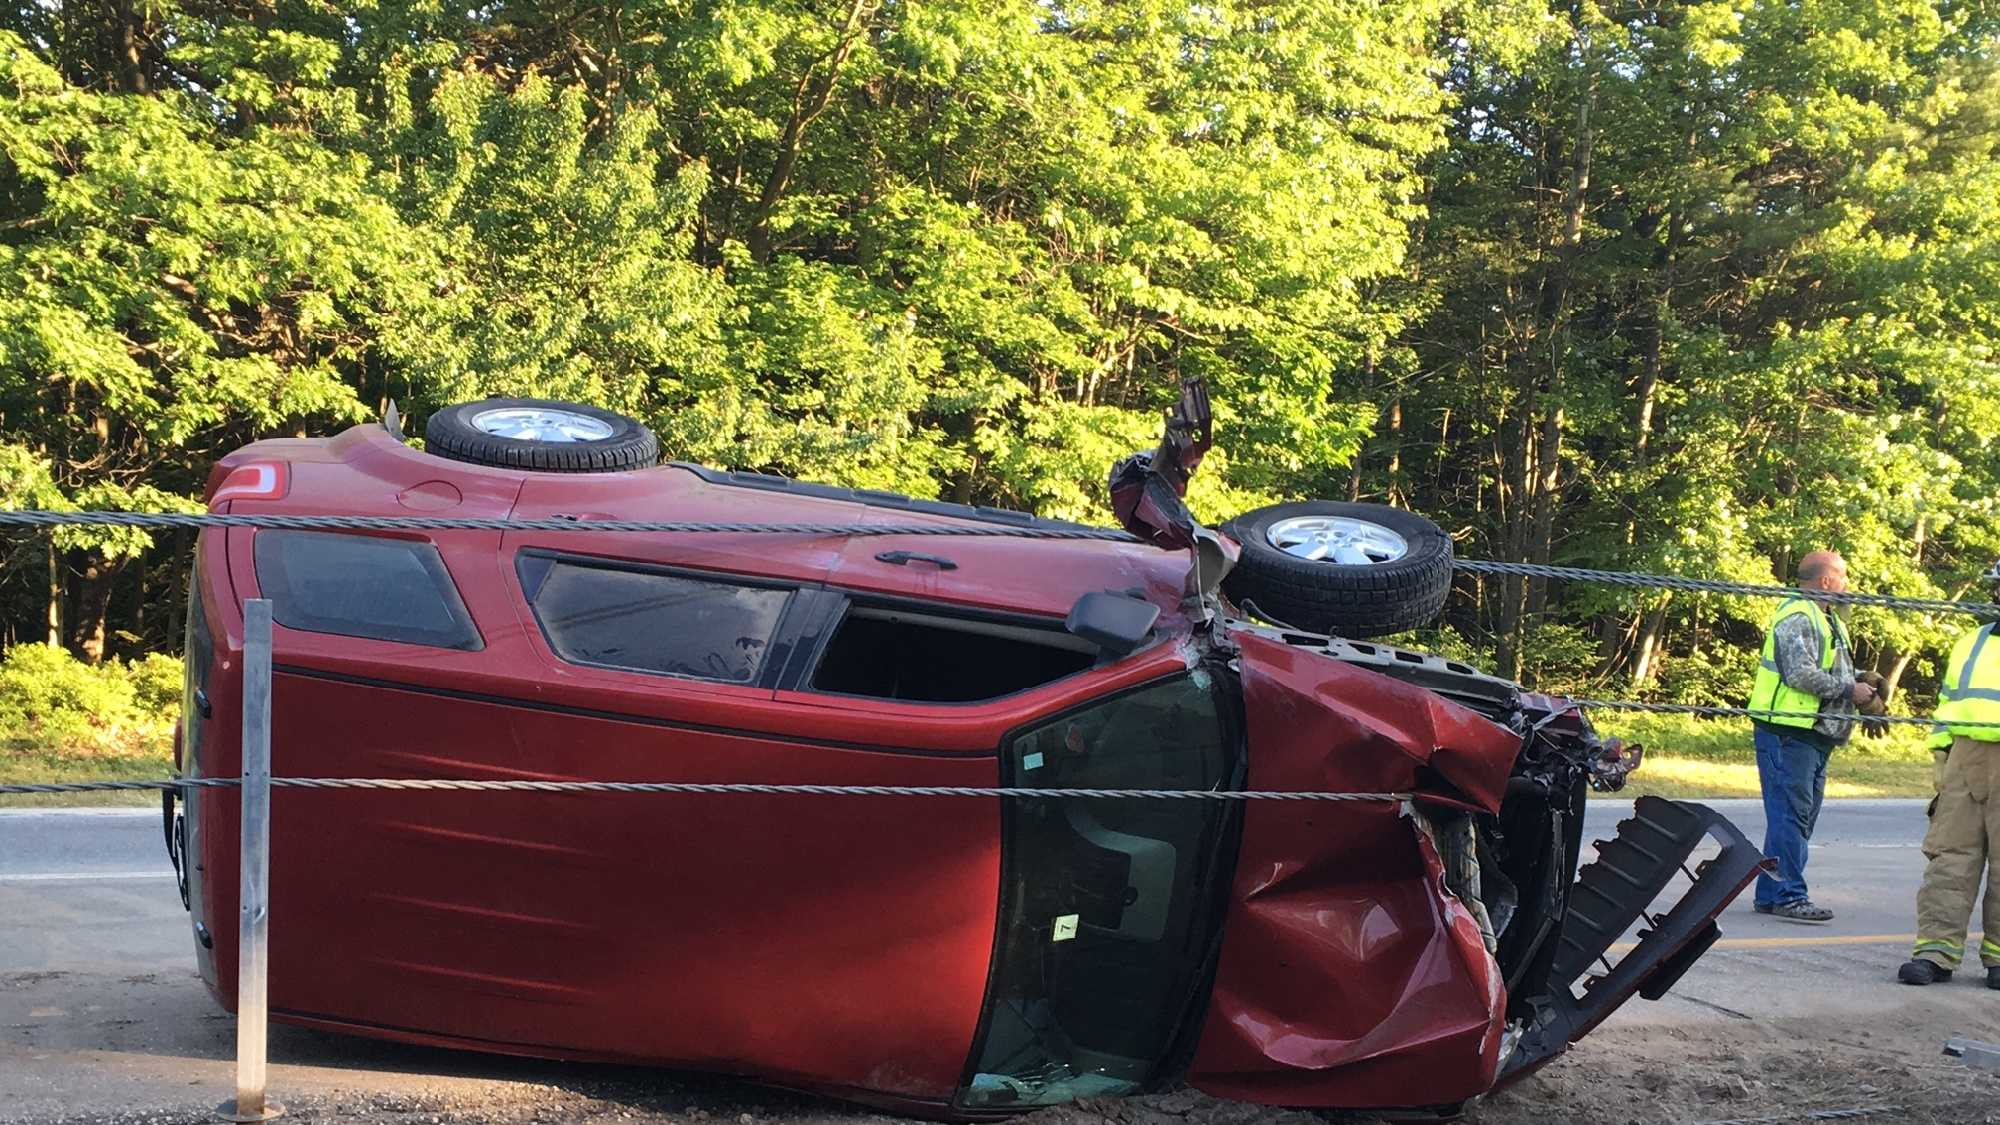 An Augusta man is recovering after crashing his vehicle early Sunday morning.